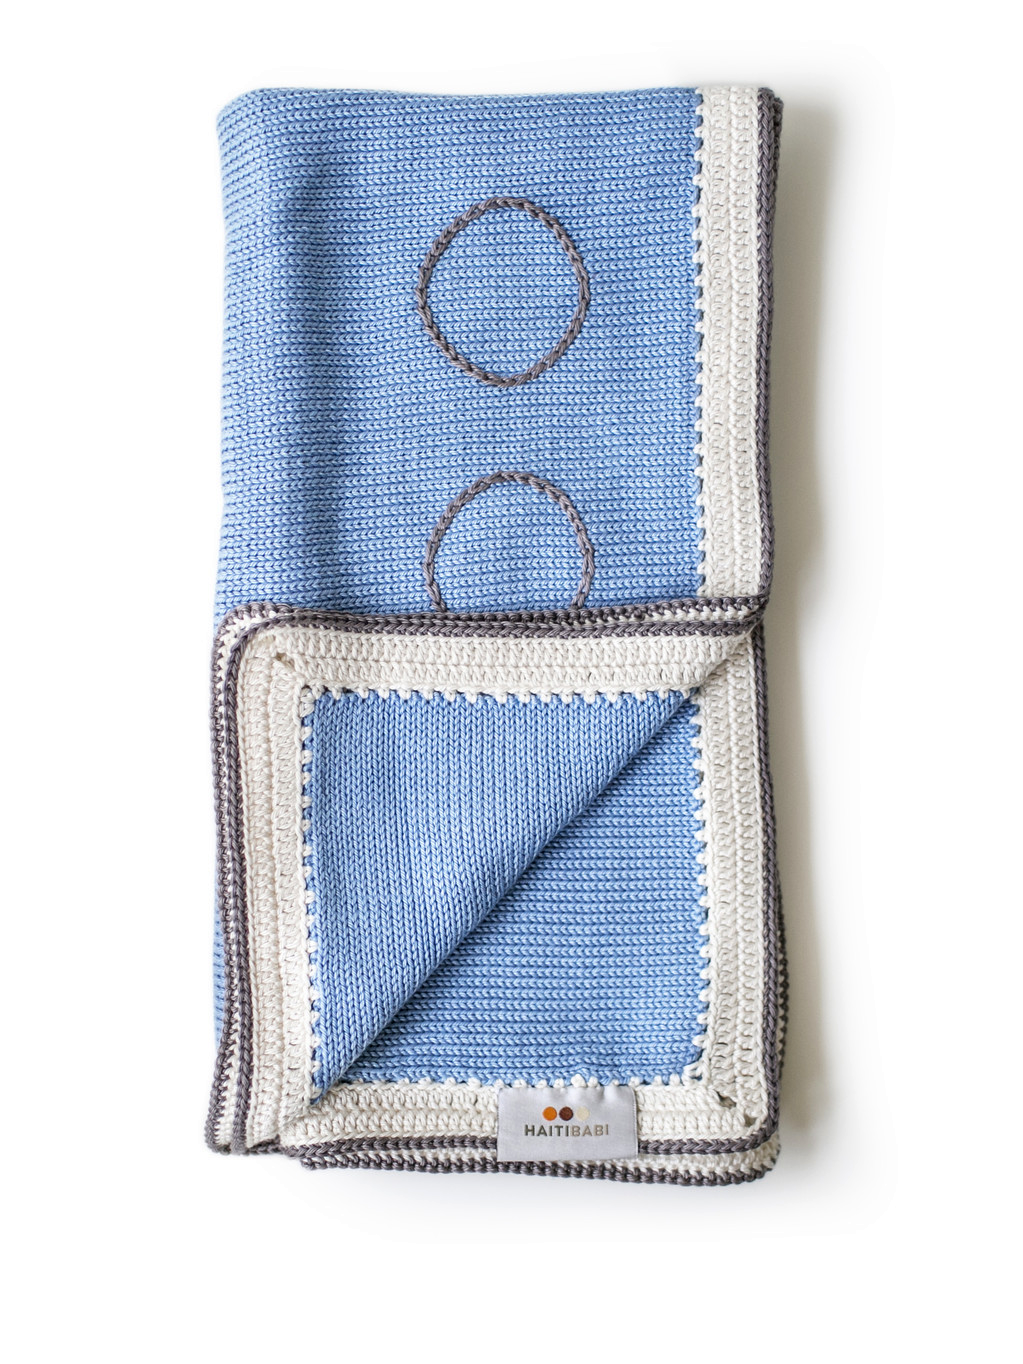 Hand-knit Pima Cotton Baby Blanket (light blue)